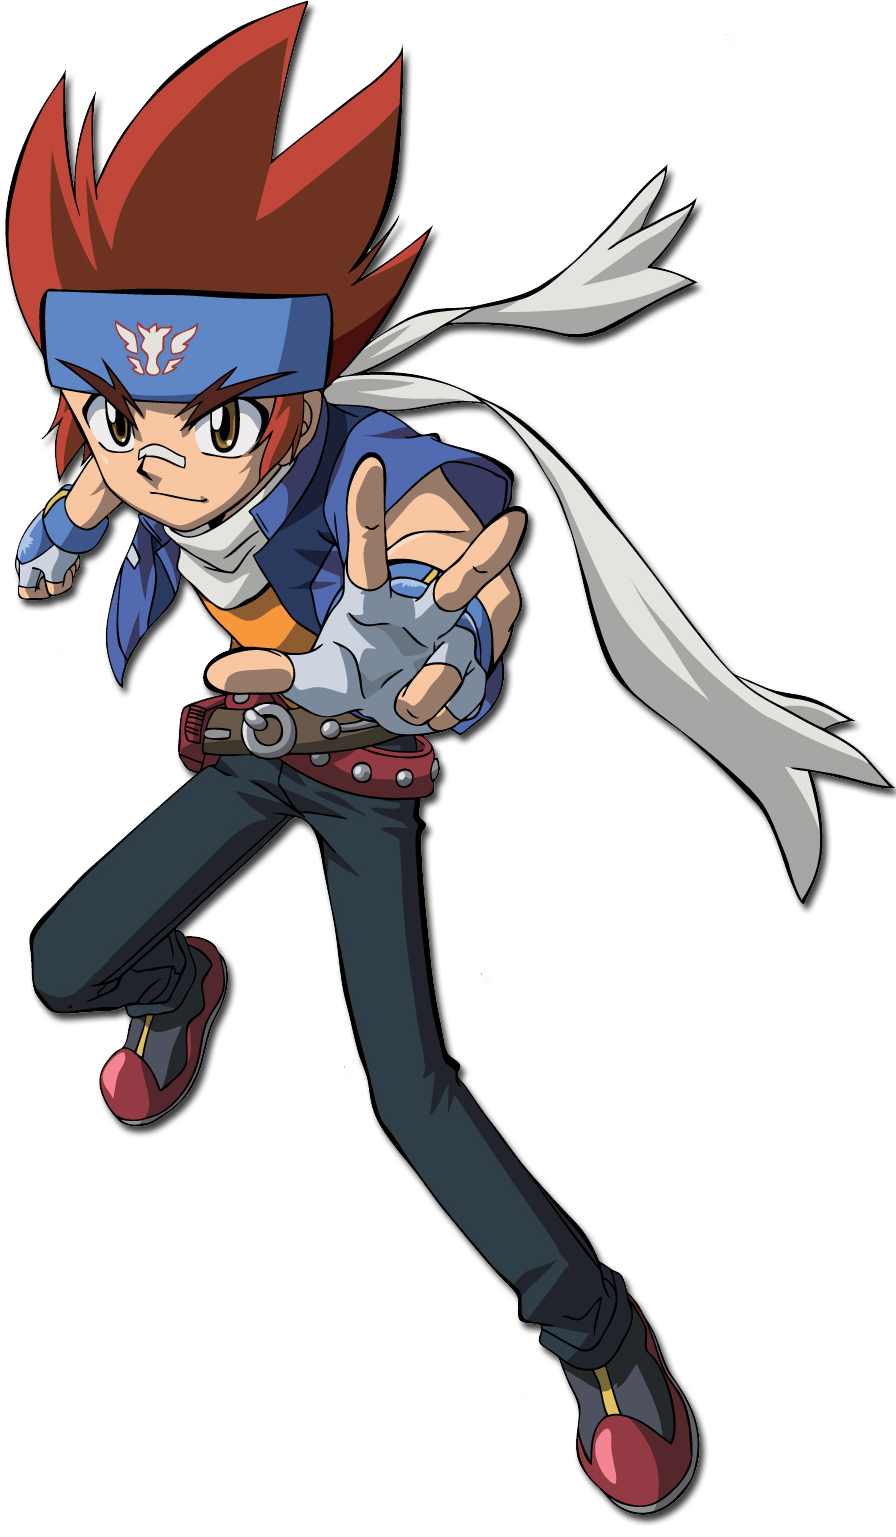 vector freeuse download Gingka hagane battless wiki. Beyblade drawing pegasus